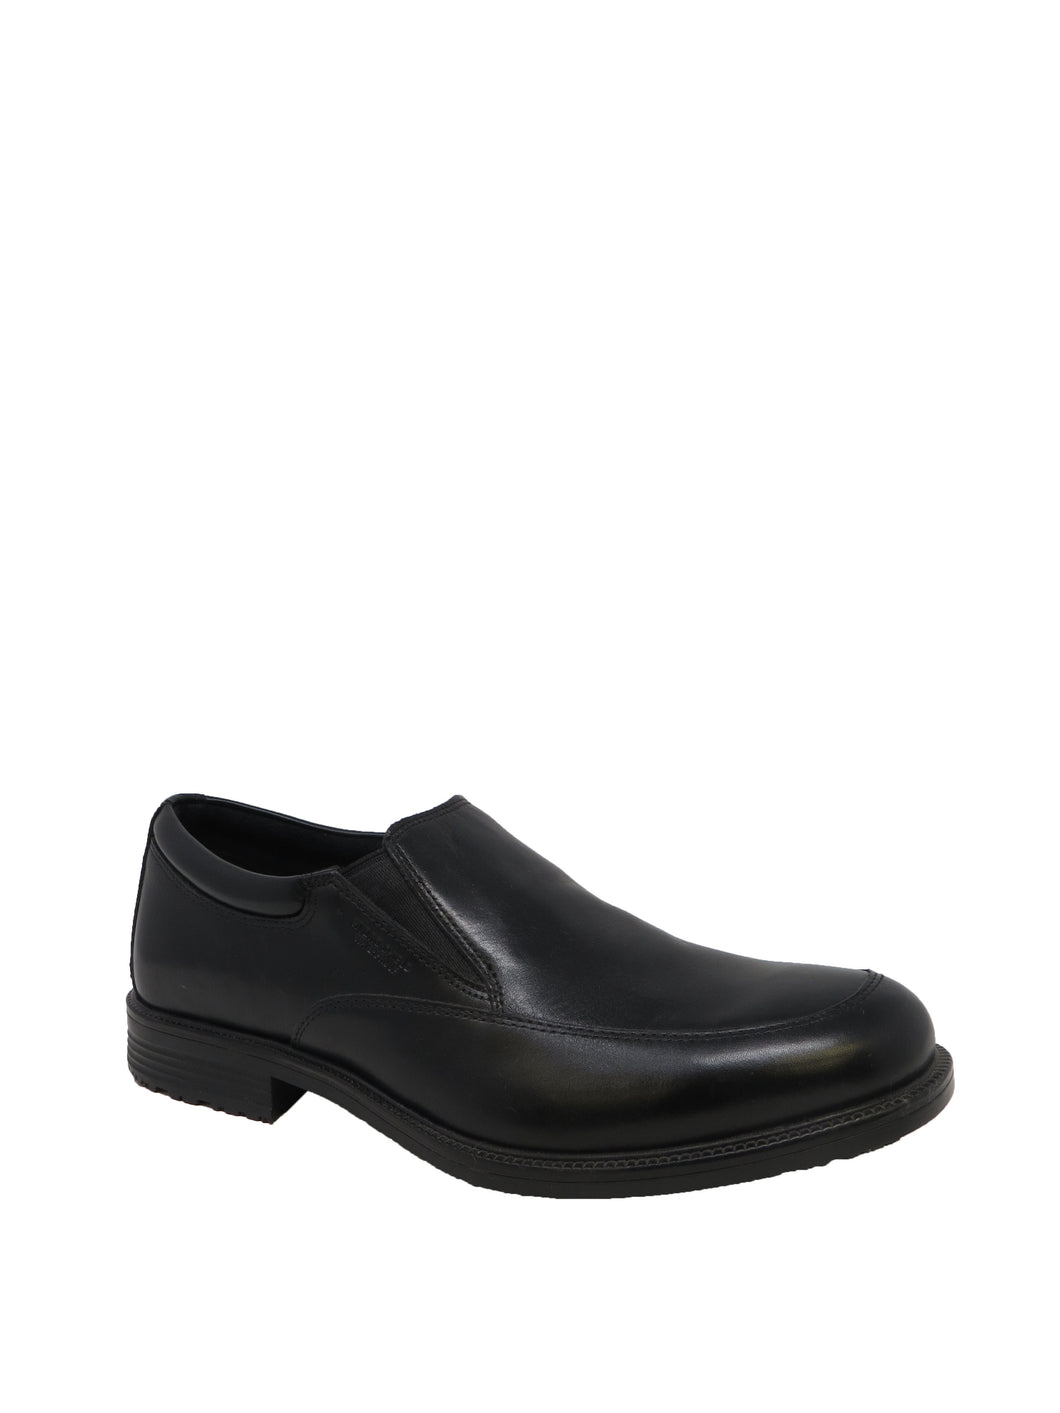 Rockport | V75100 | Essential Details Waterproof Slip-On | Black